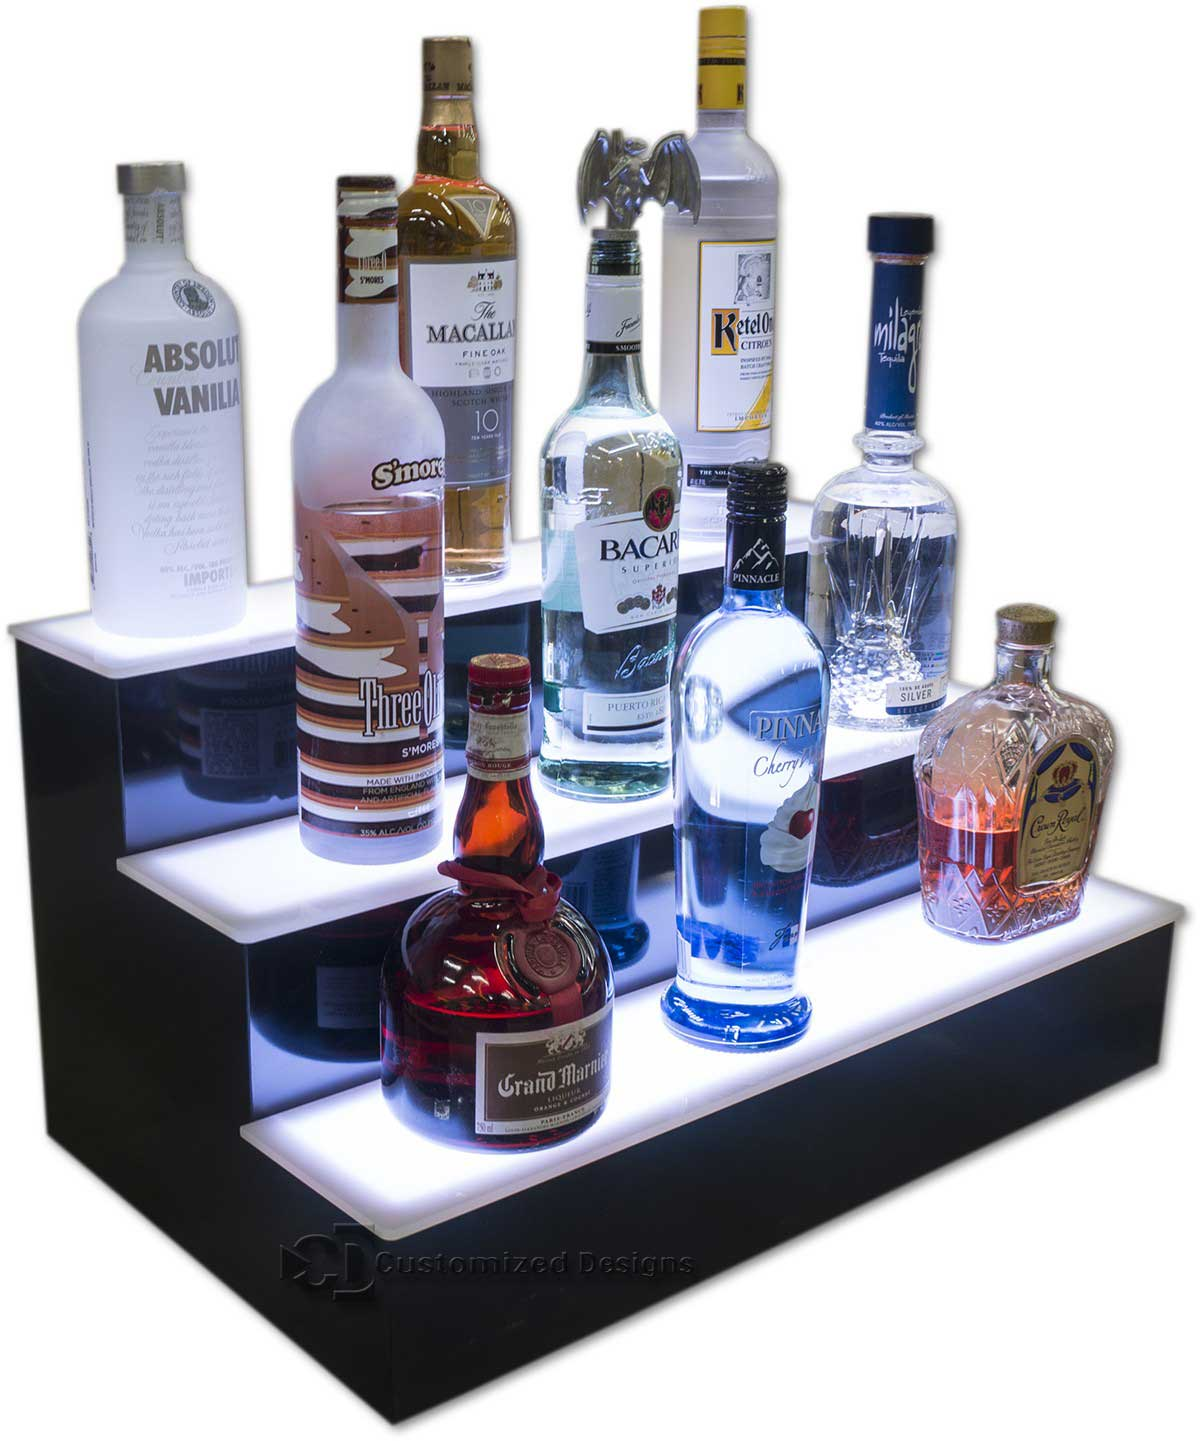 3 Tier Liquor Display w/ White Lighting